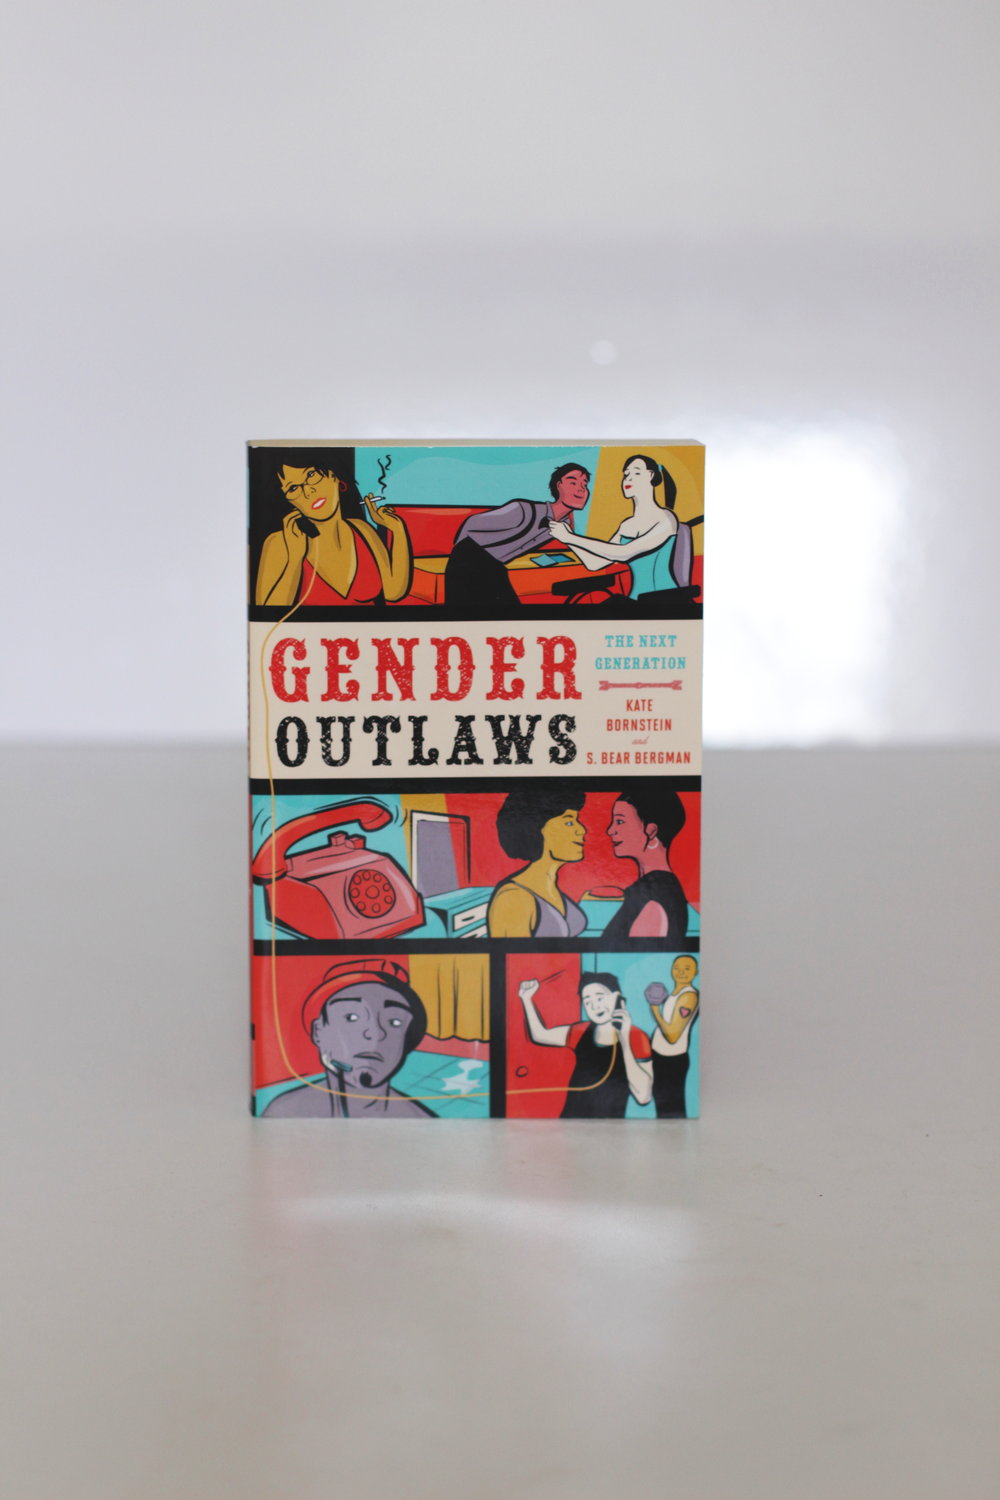 Gender Outlaws: The Next Generation – Kate Bornstein and S. Bear Bergman